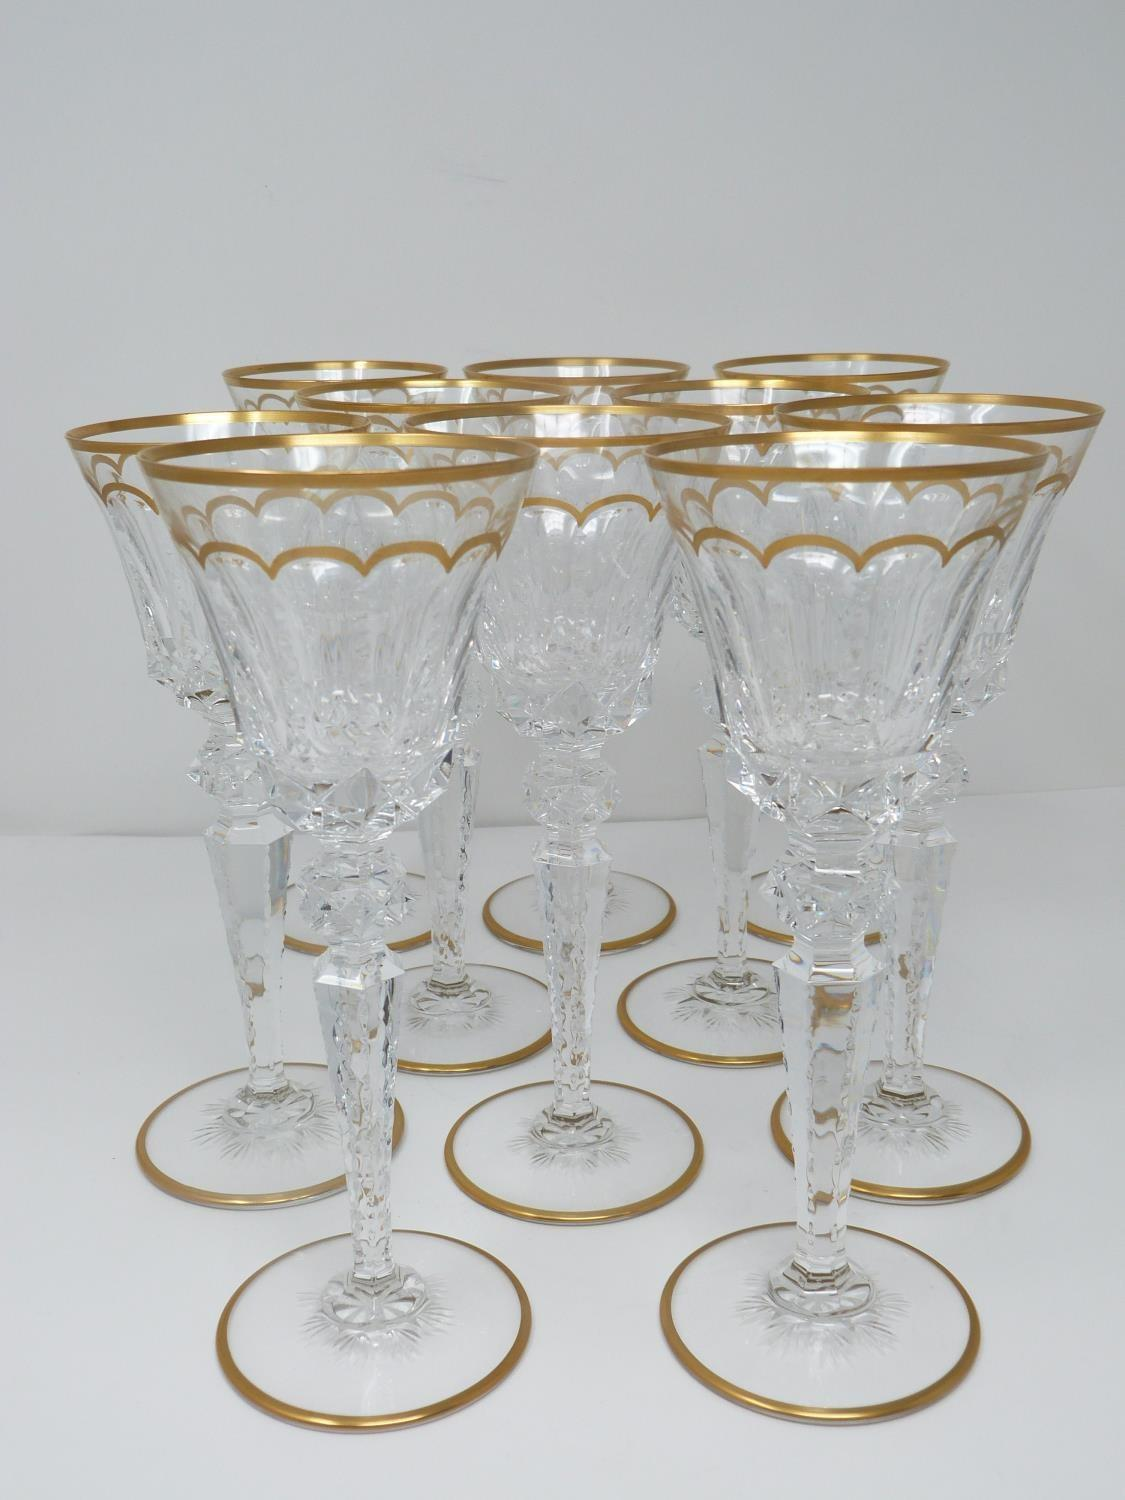 A set of ten St Louis Excellence crystal wine glasses, with gilded scalloped detailing and gilded